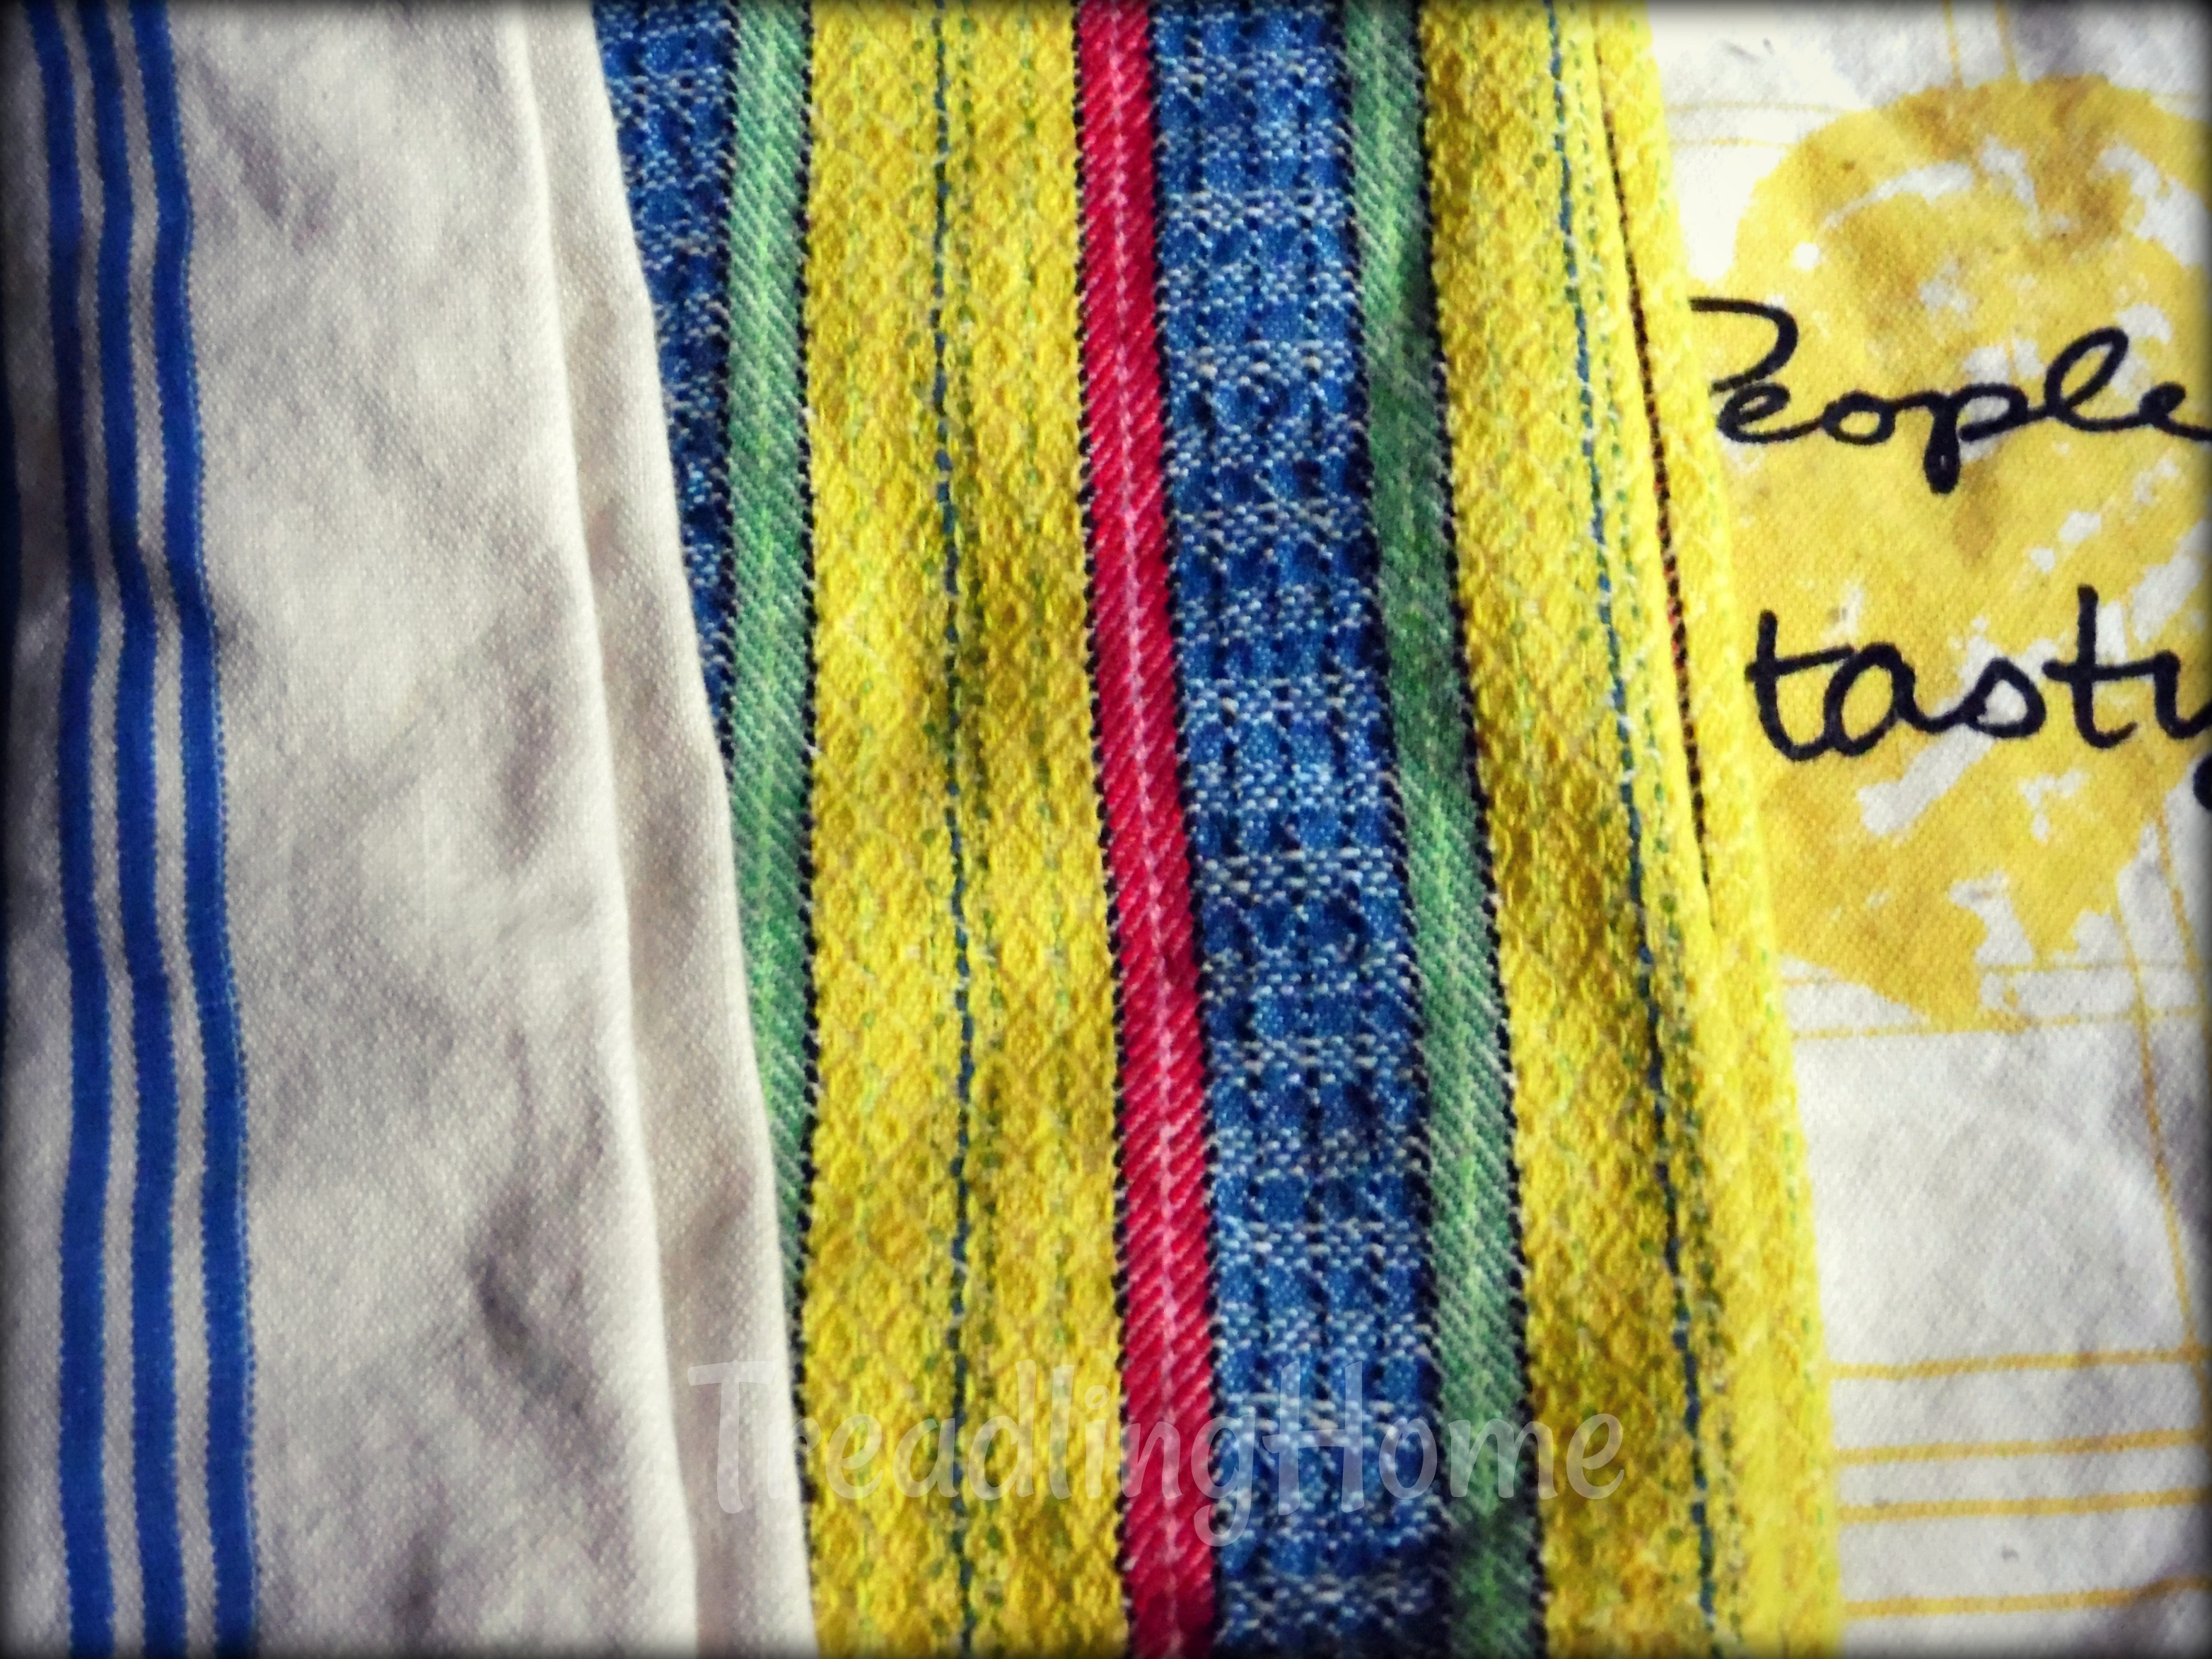 tea towel texture